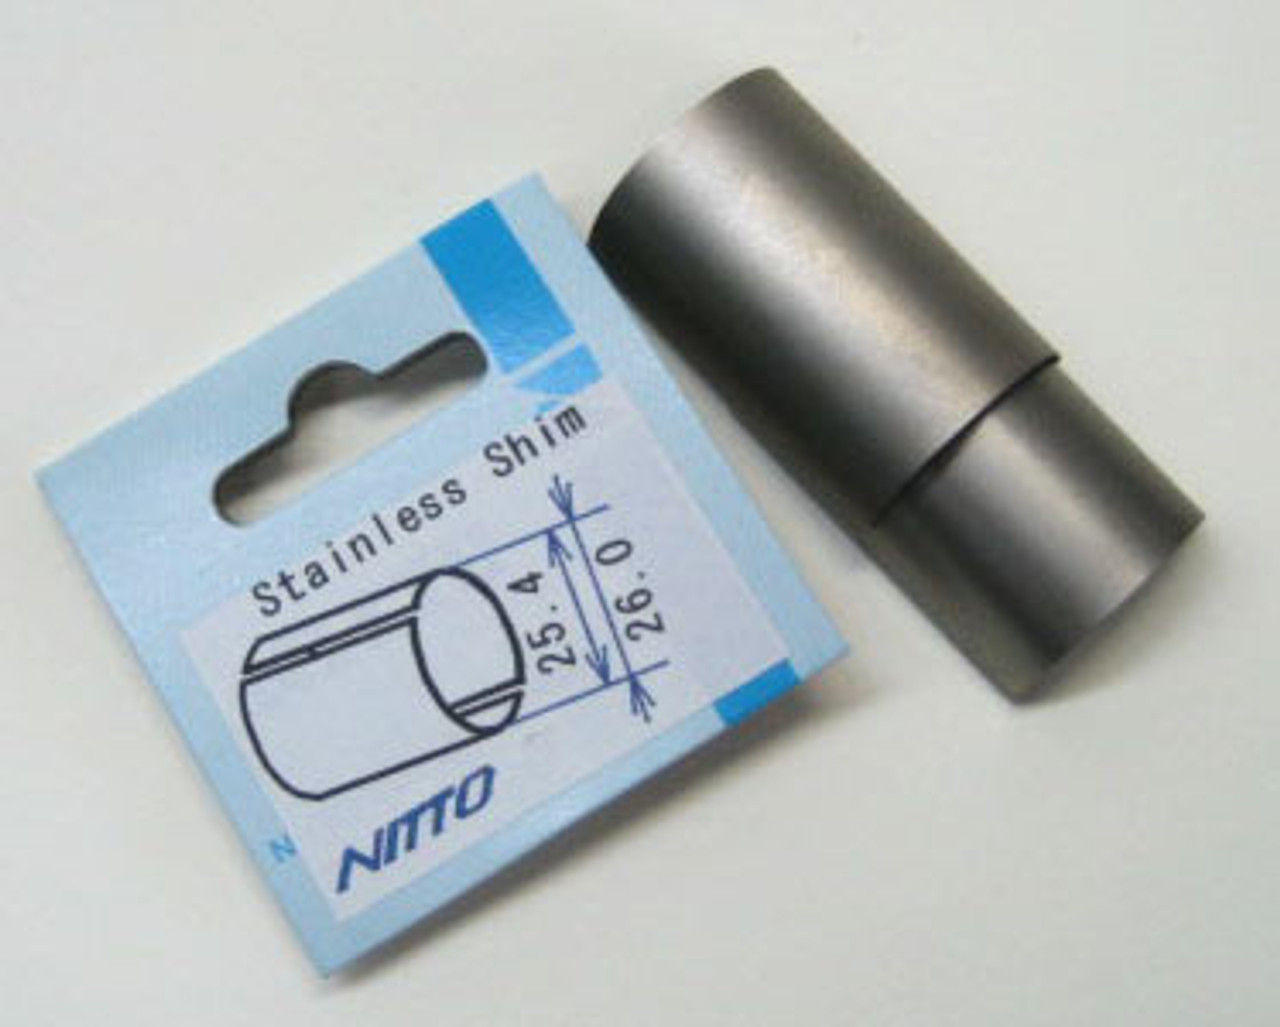 Nitto Stainless Steel Shims 26.0mm - 25.4mm